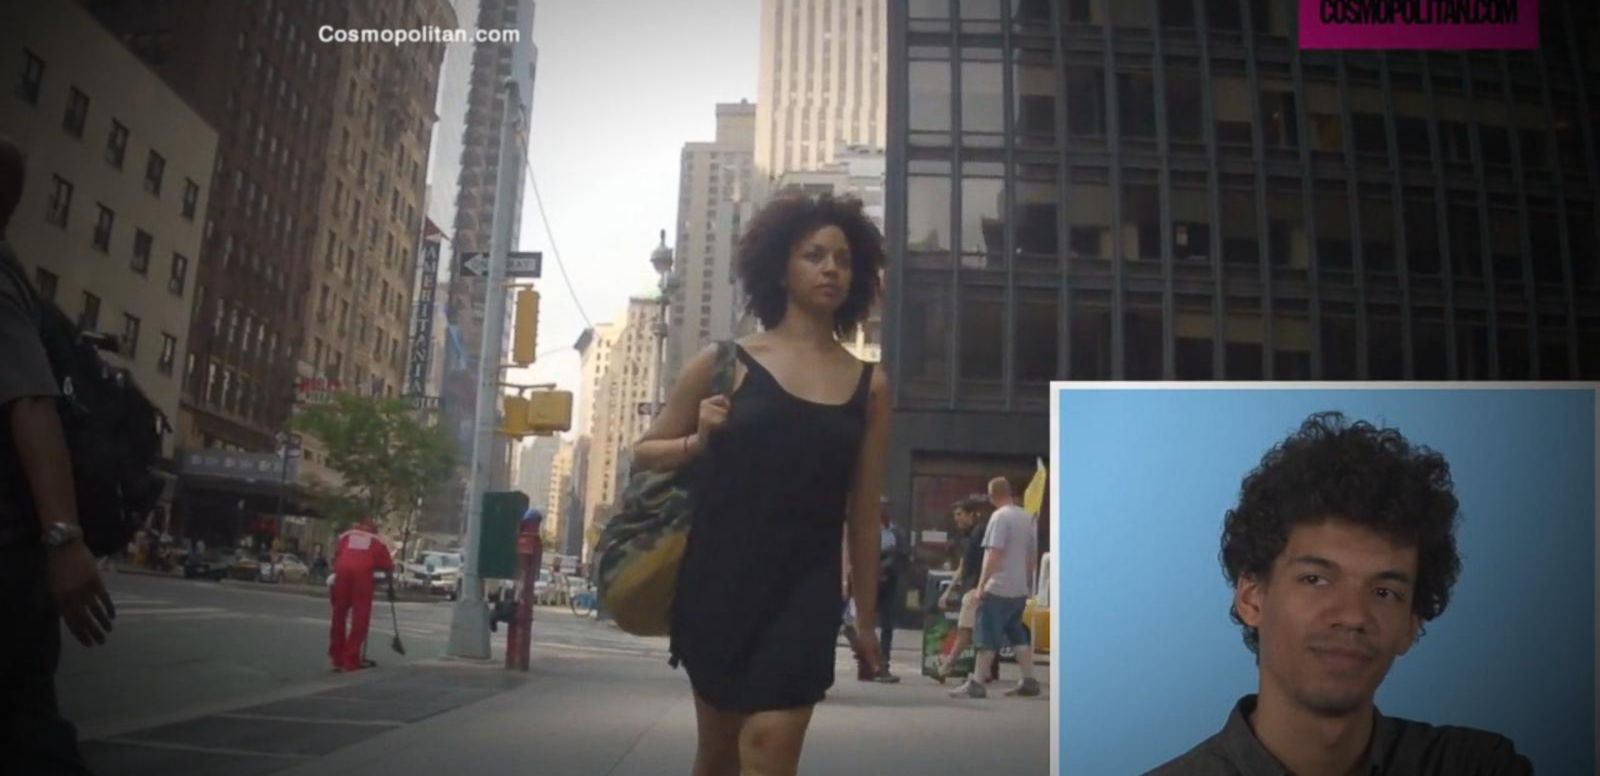 VIDEO: New Catcalling Video Reveals What It's Like to Be a Woman